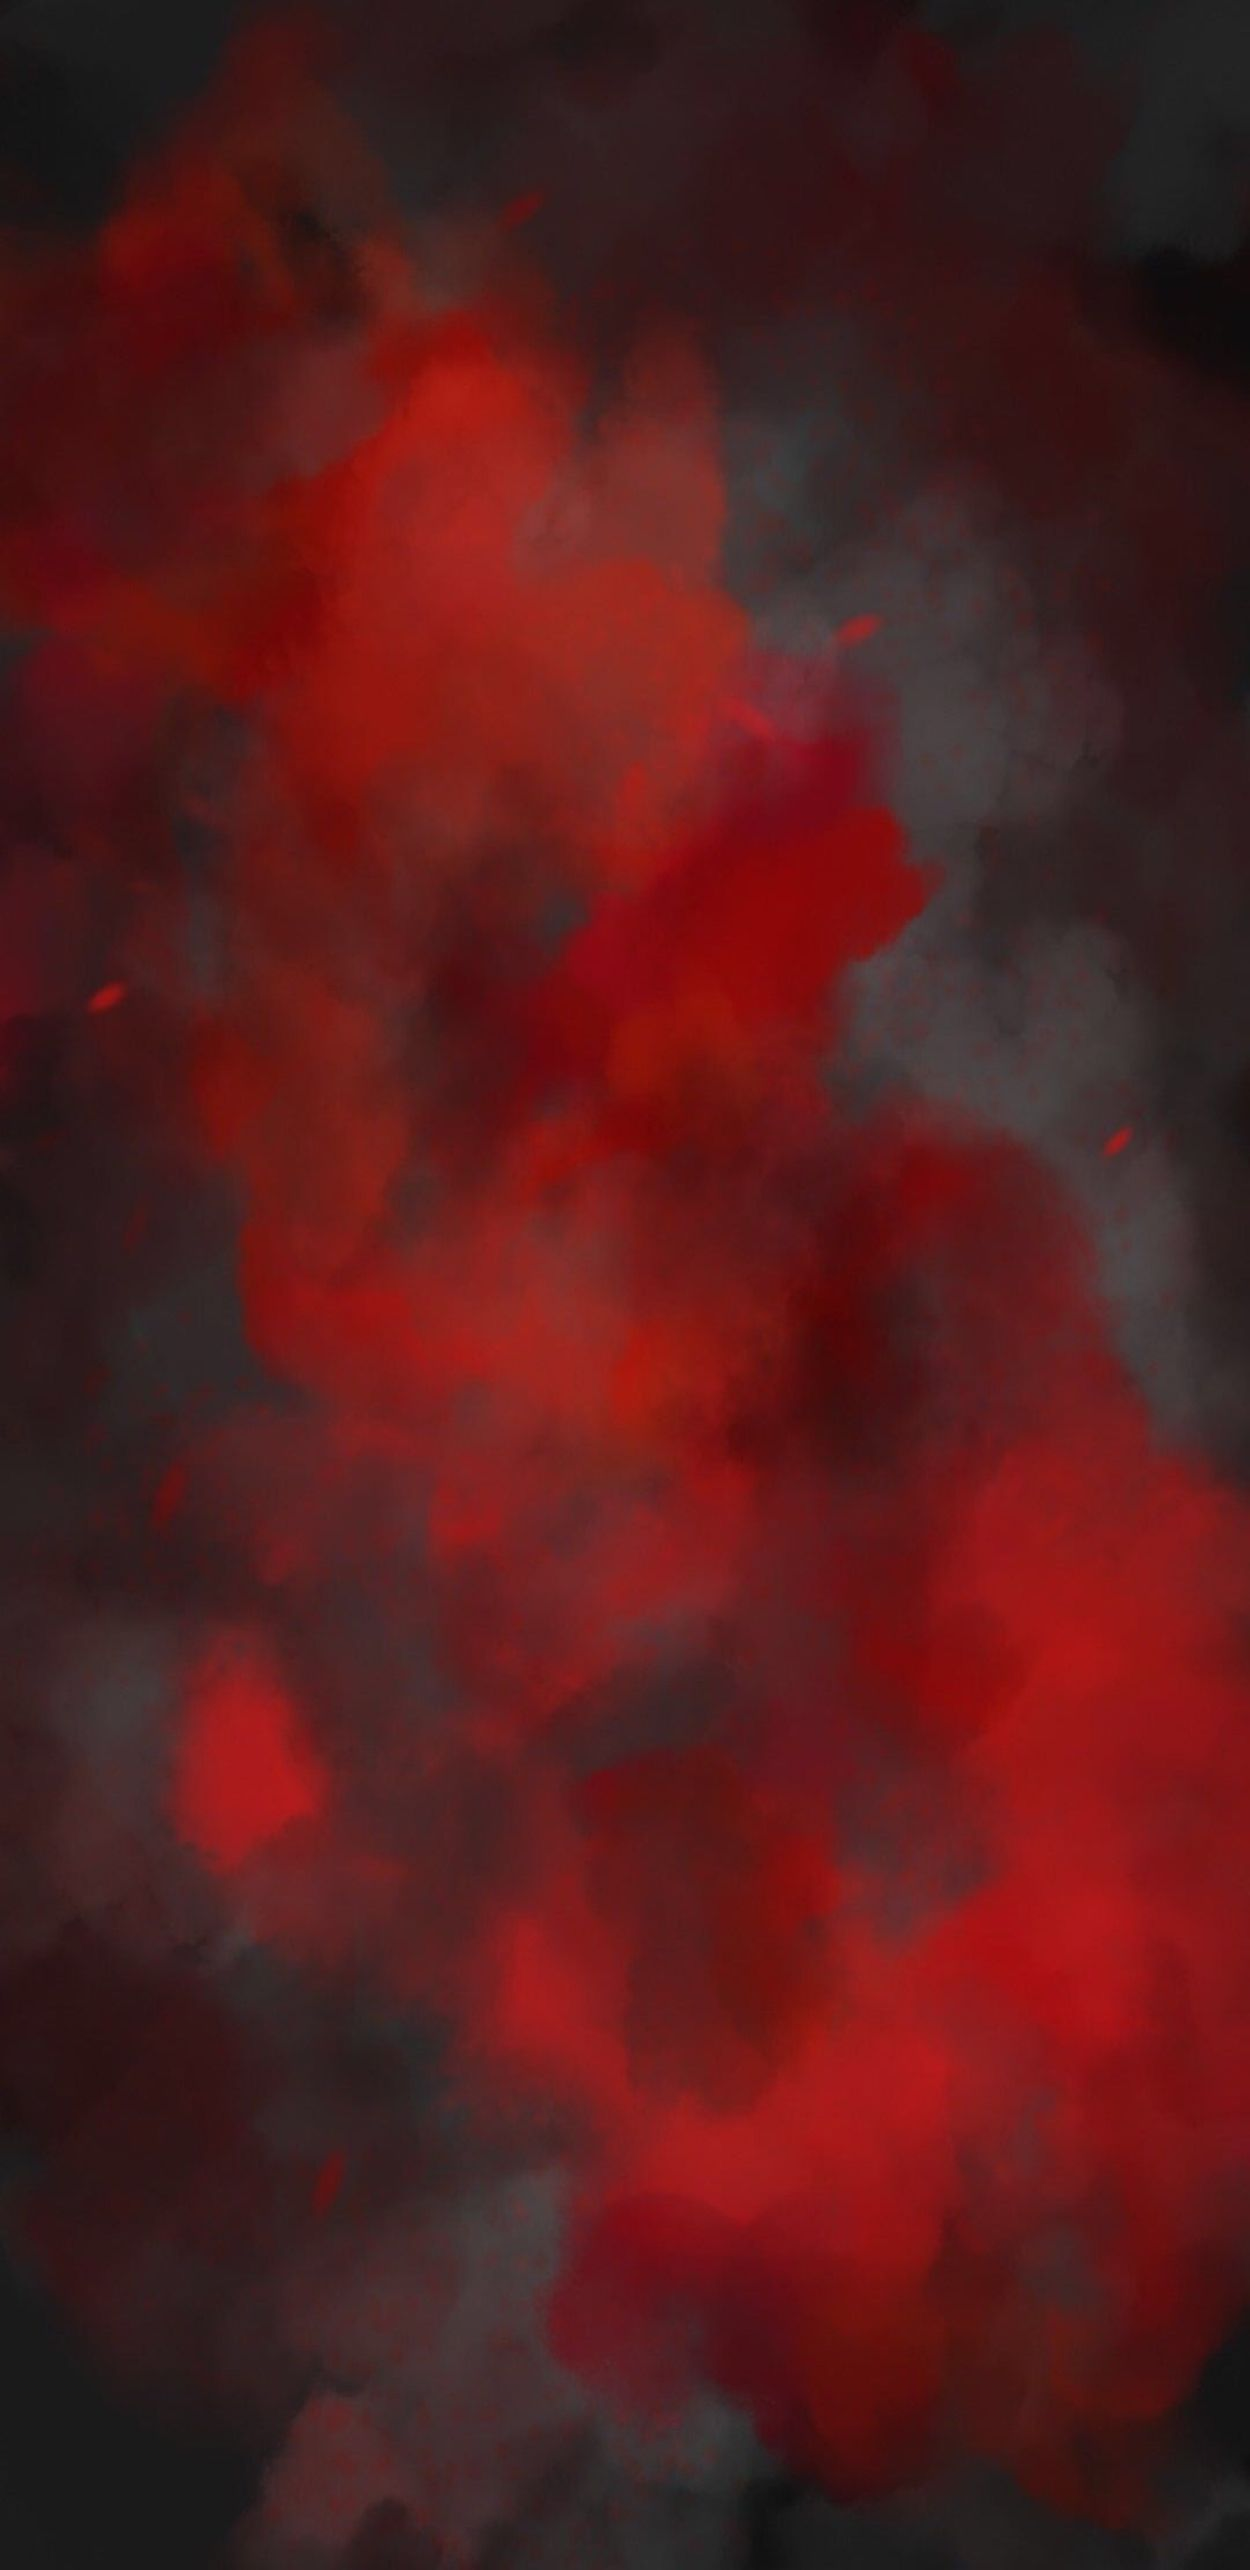 Dark Blood Wallpaper Red Dark Blood Abstract Wallpaper Galaxy Clean Beauty